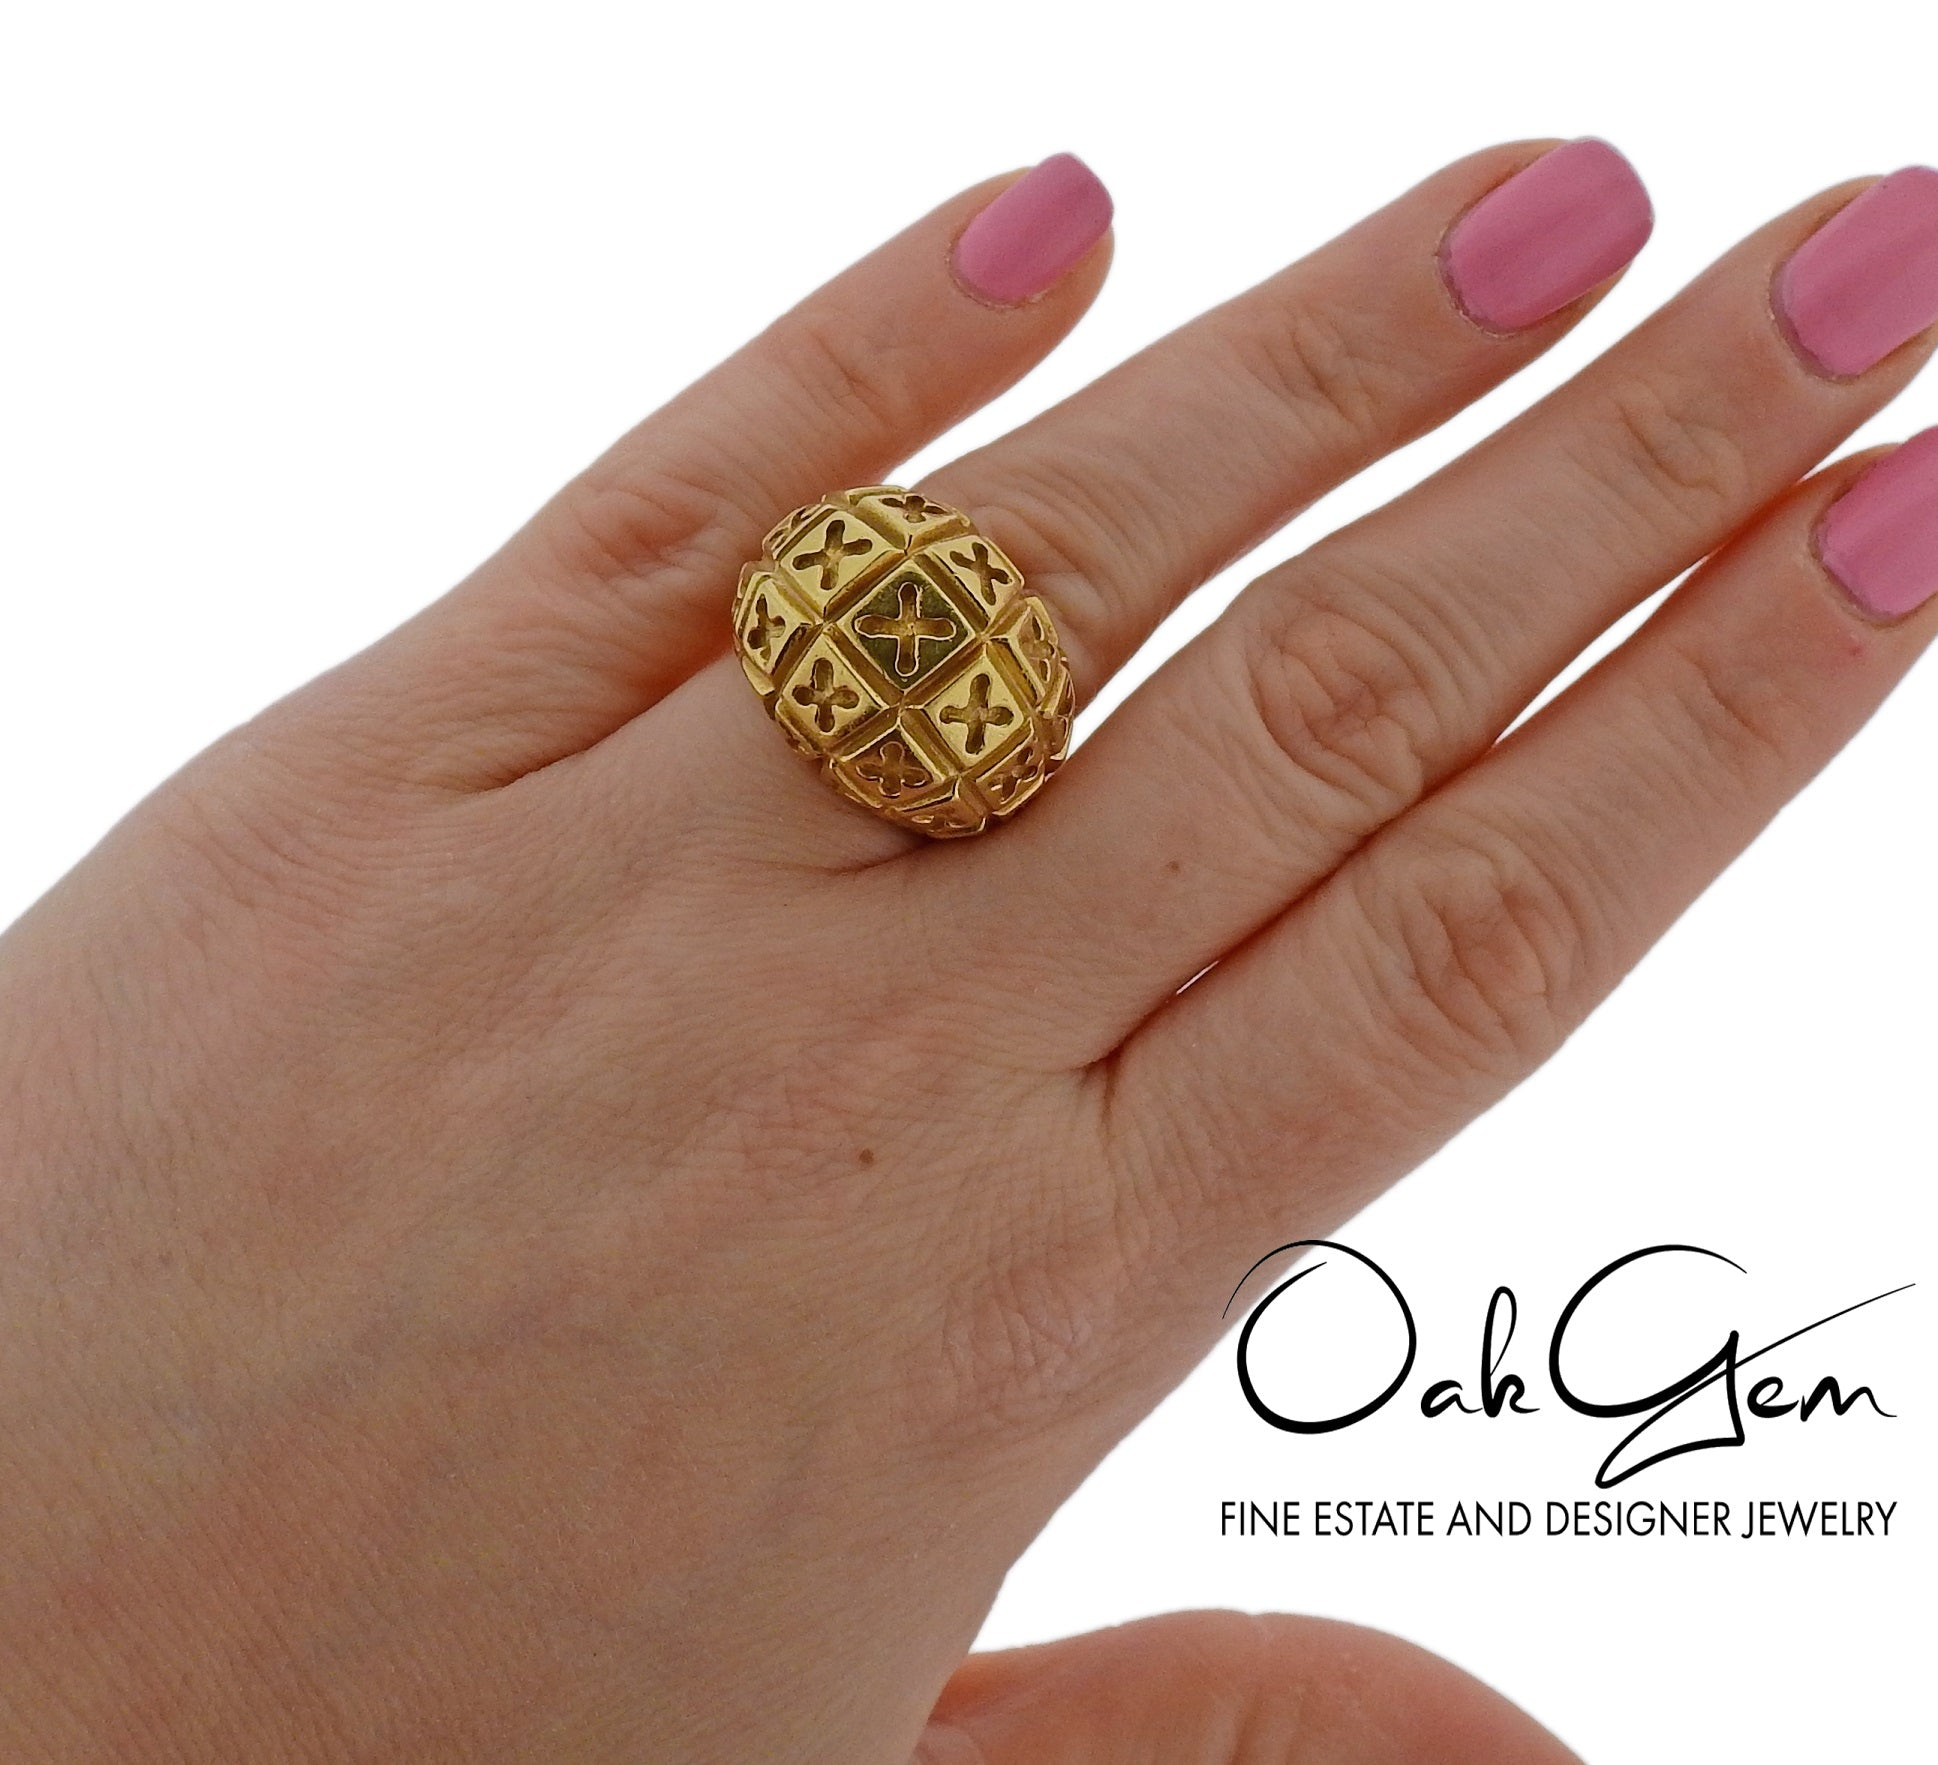 Van Cleef & Arpels Gold Dome Ring